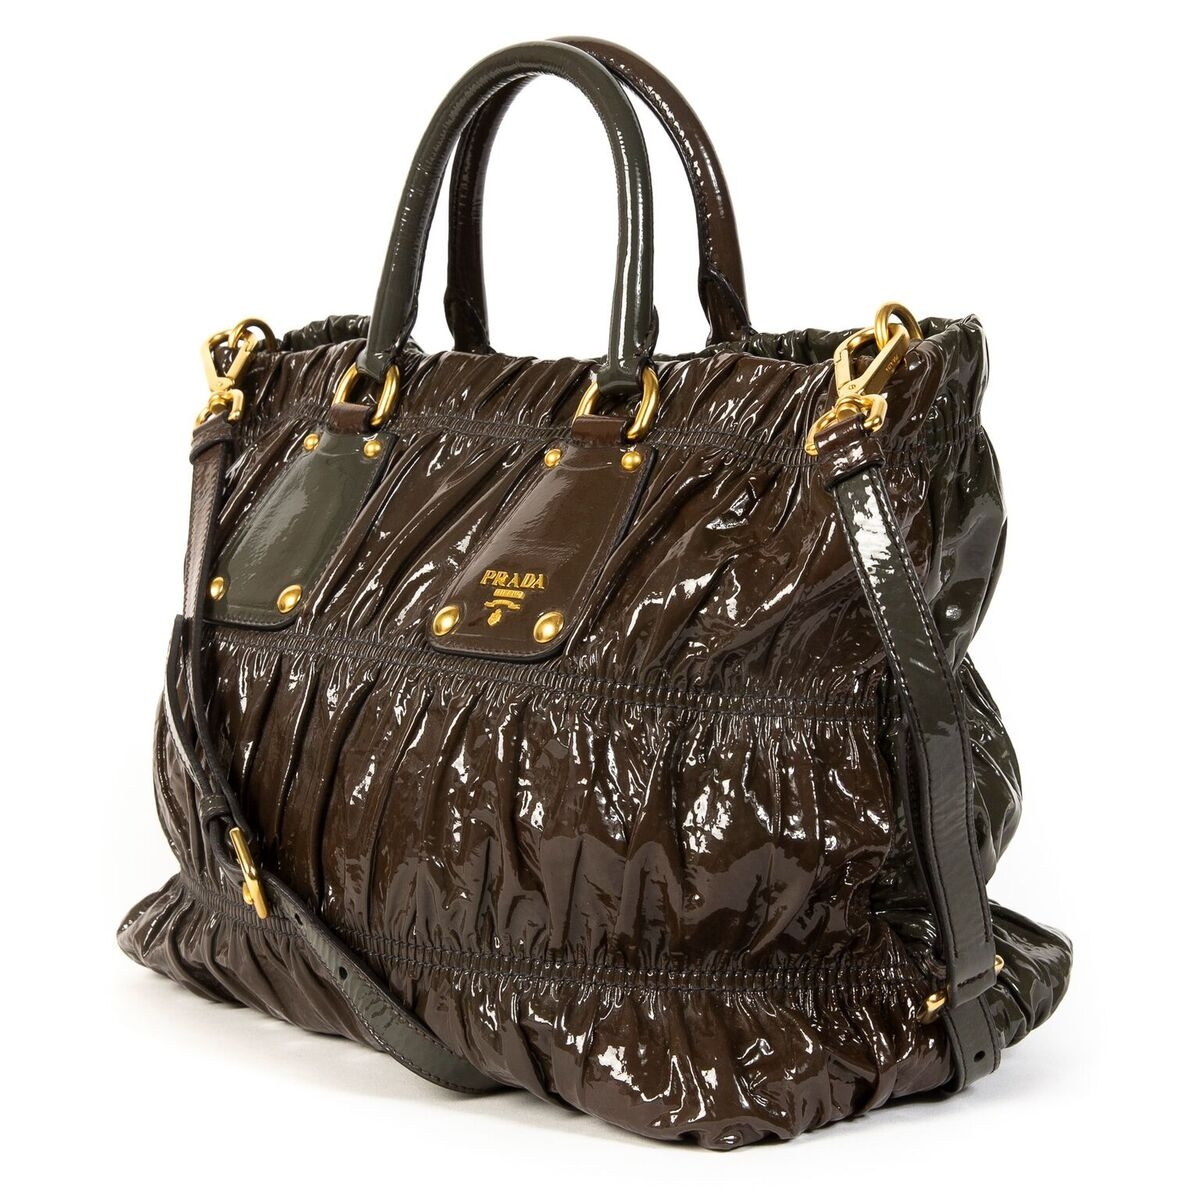 Buy this authentic second-hand vintage Prada Duotone Patent Leather Tote Bag at online webshop LabelLOV.